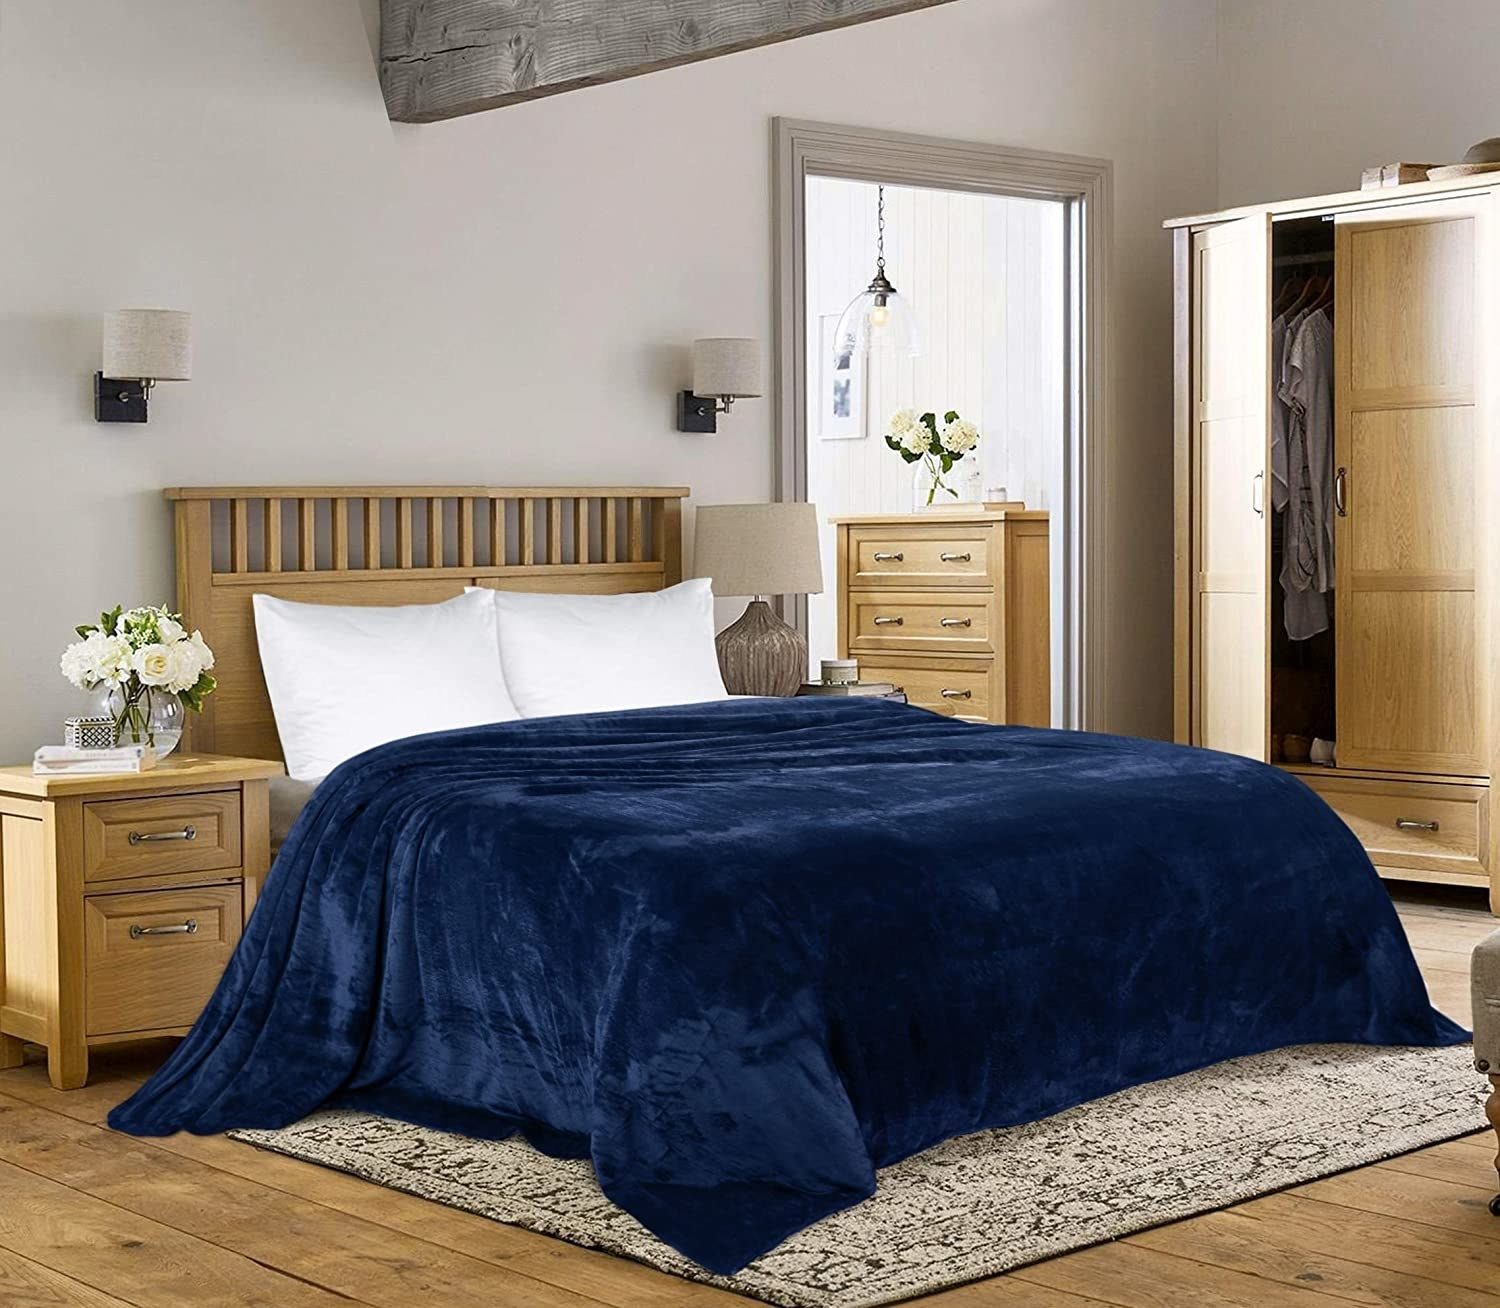 the navy blue fleece blanket spread over a bed